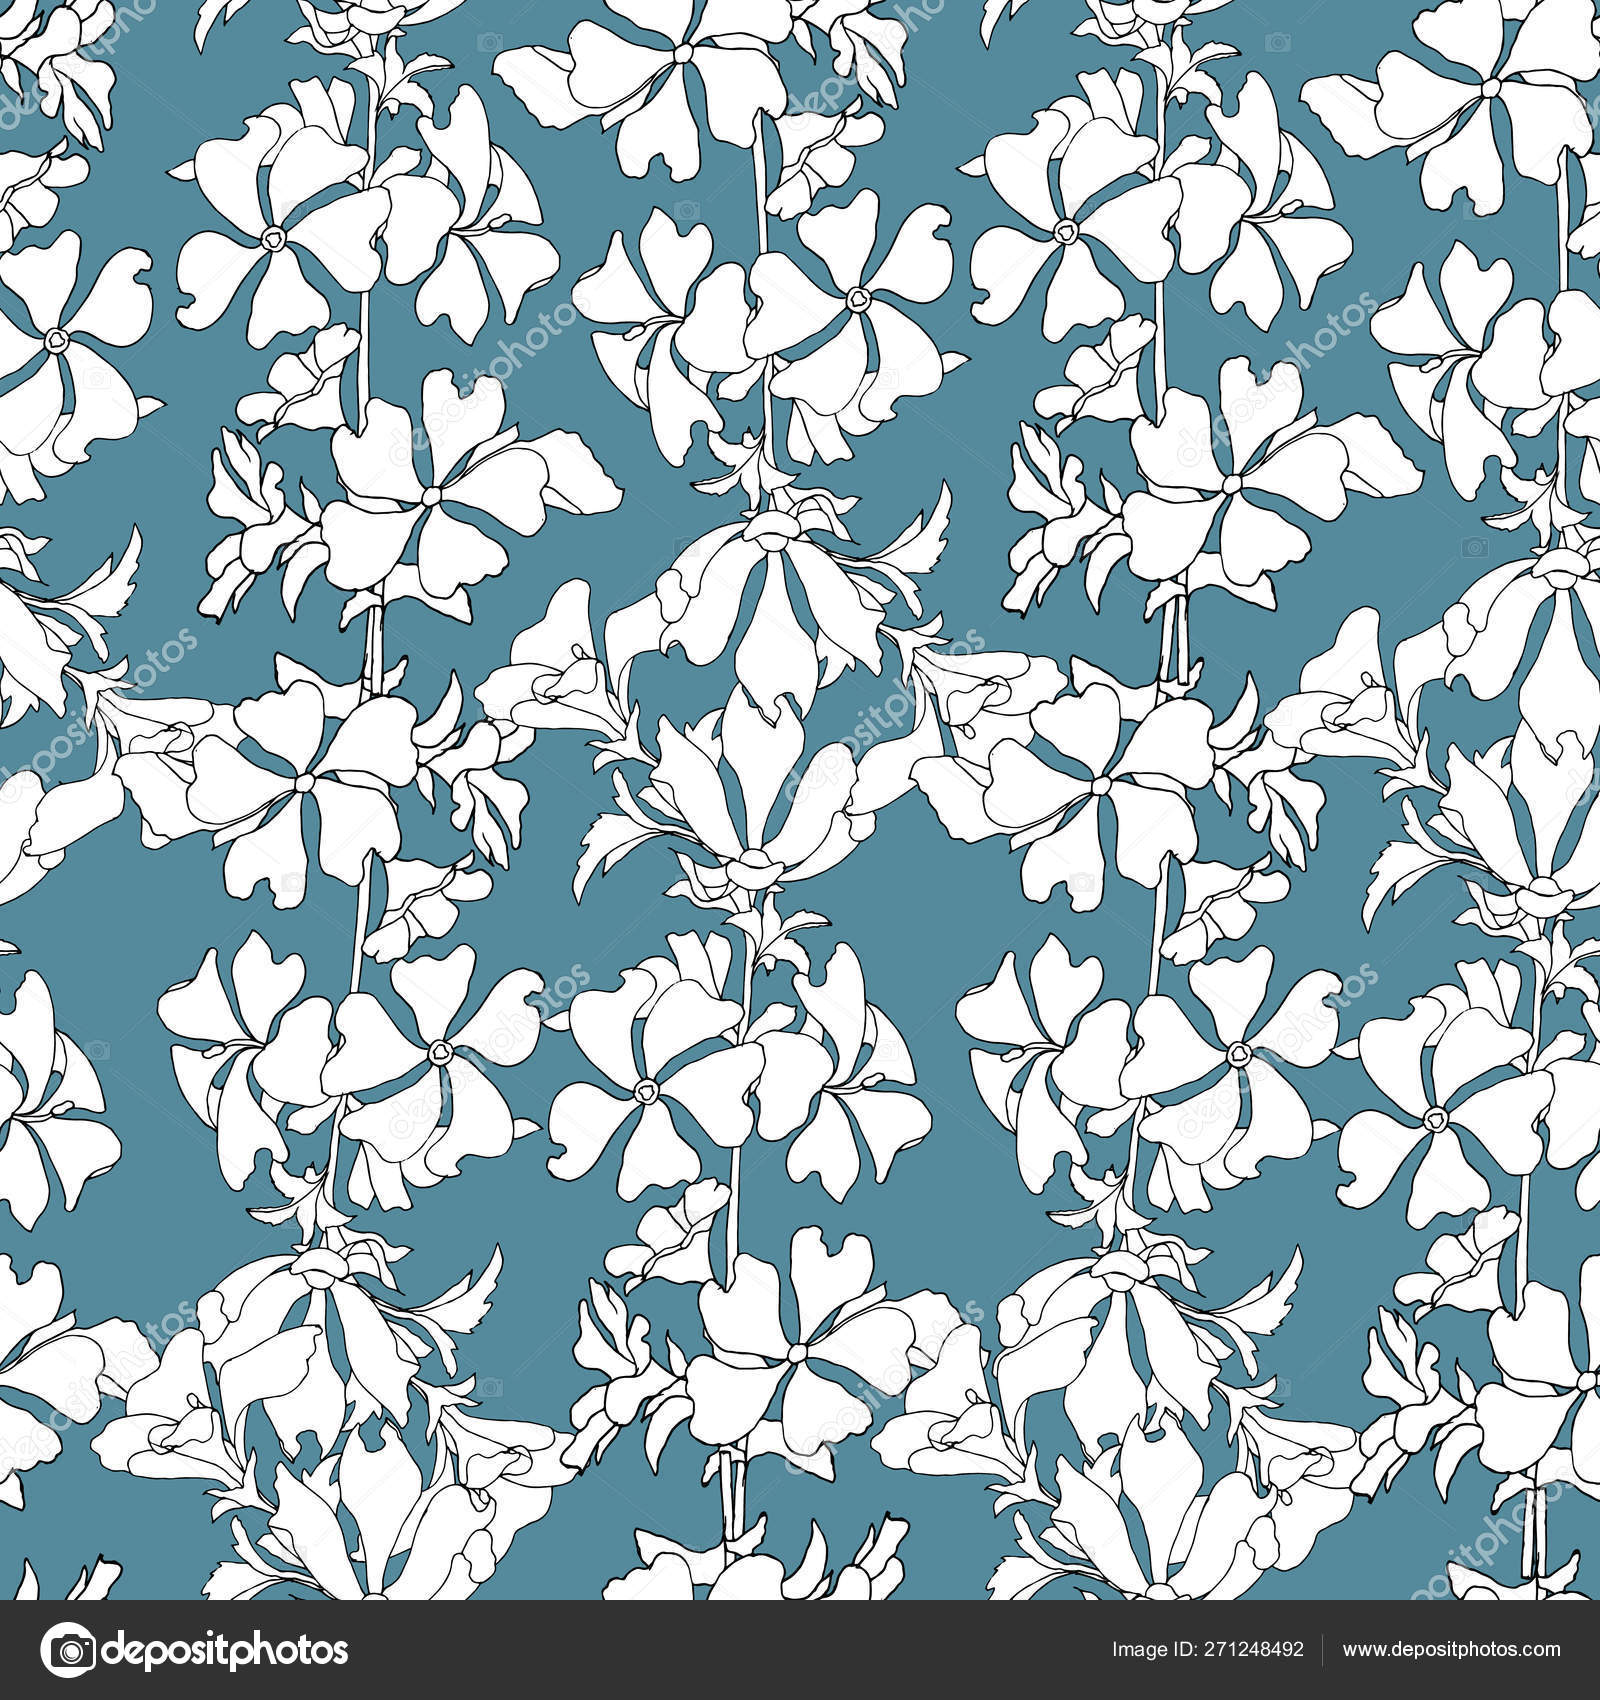 Simple Floral Background With White Flowers On A Blue Background